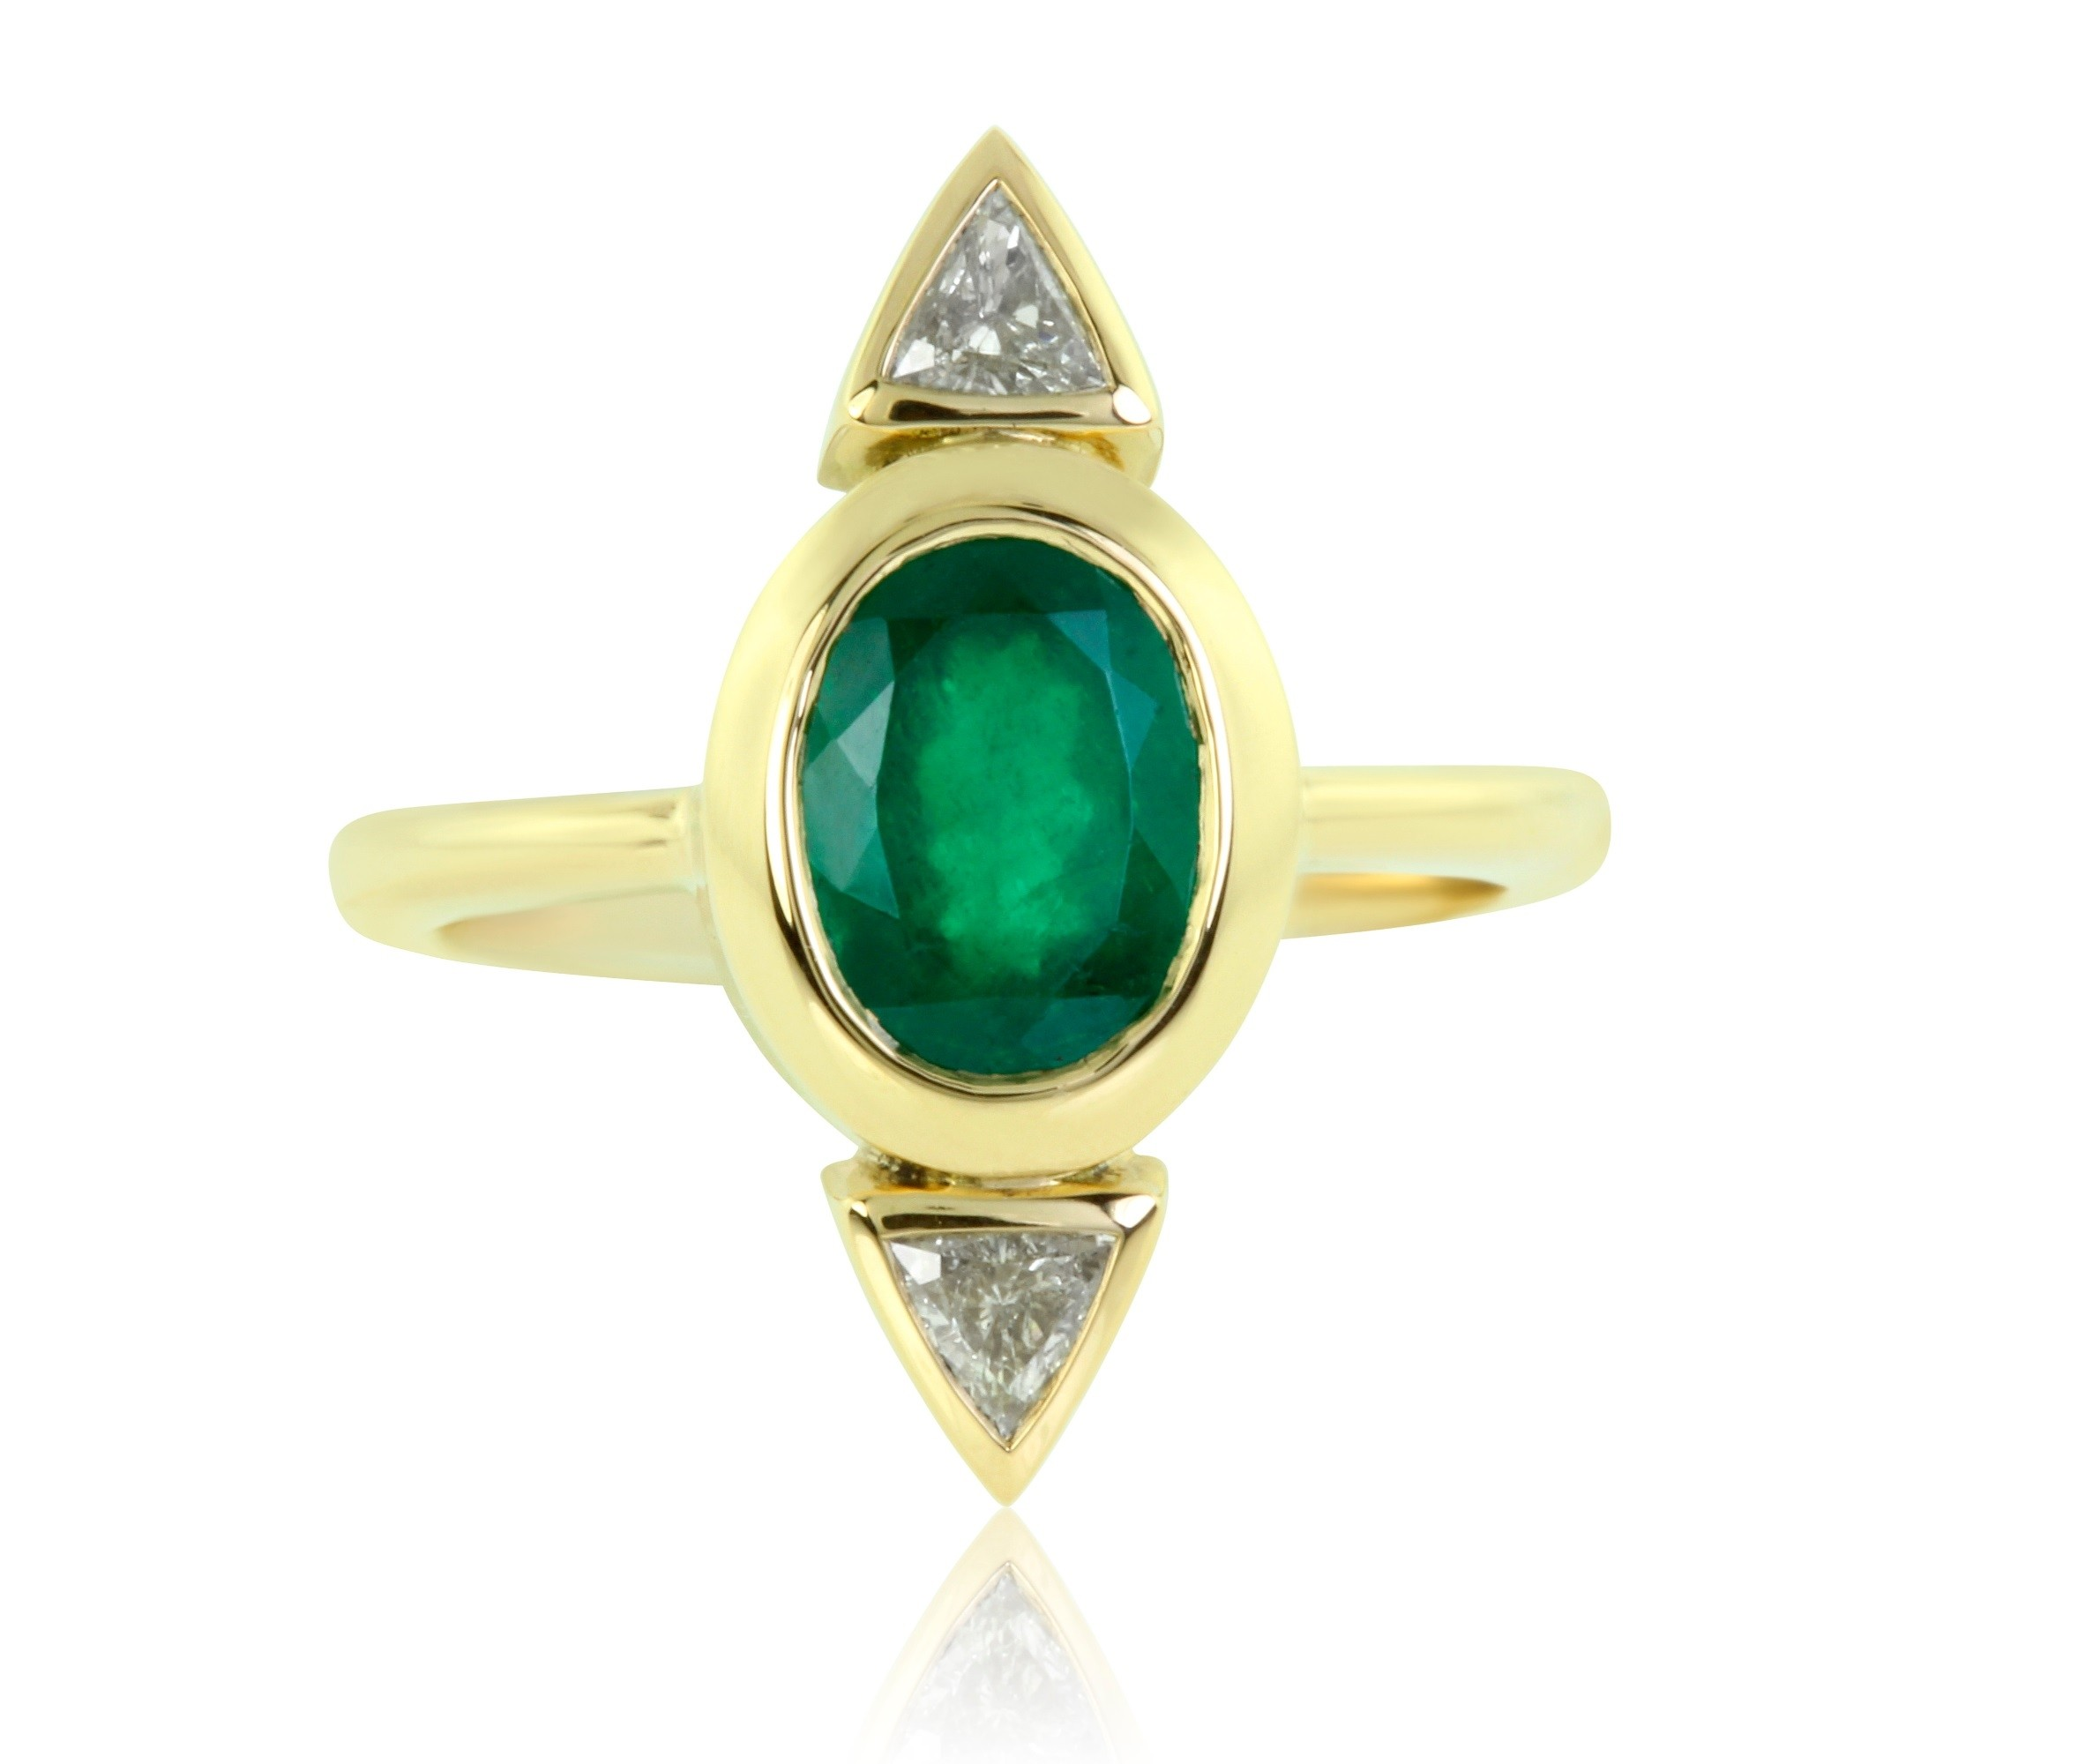 1.61 Carat Diamond and Oval Cut Natural Emerald Ring